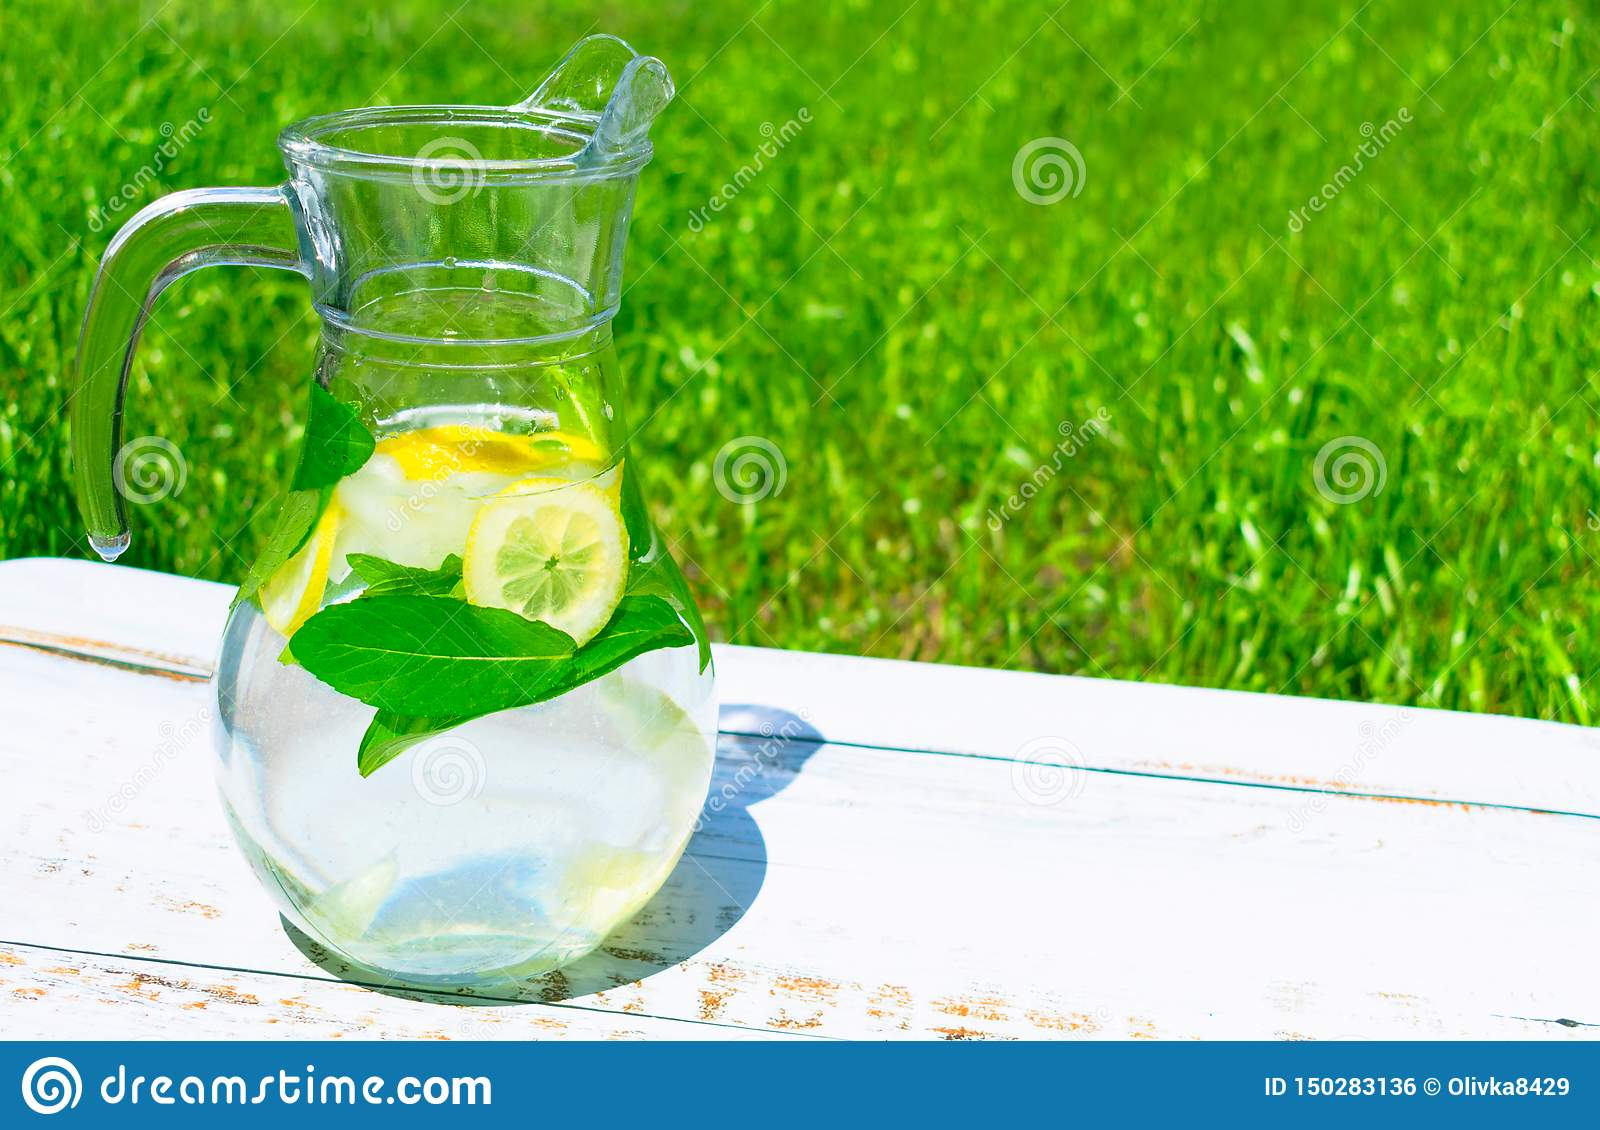 Jug with lemonade from lemon and mats with ice on a background of green grass. The concept of soft drinks. Close-up ..